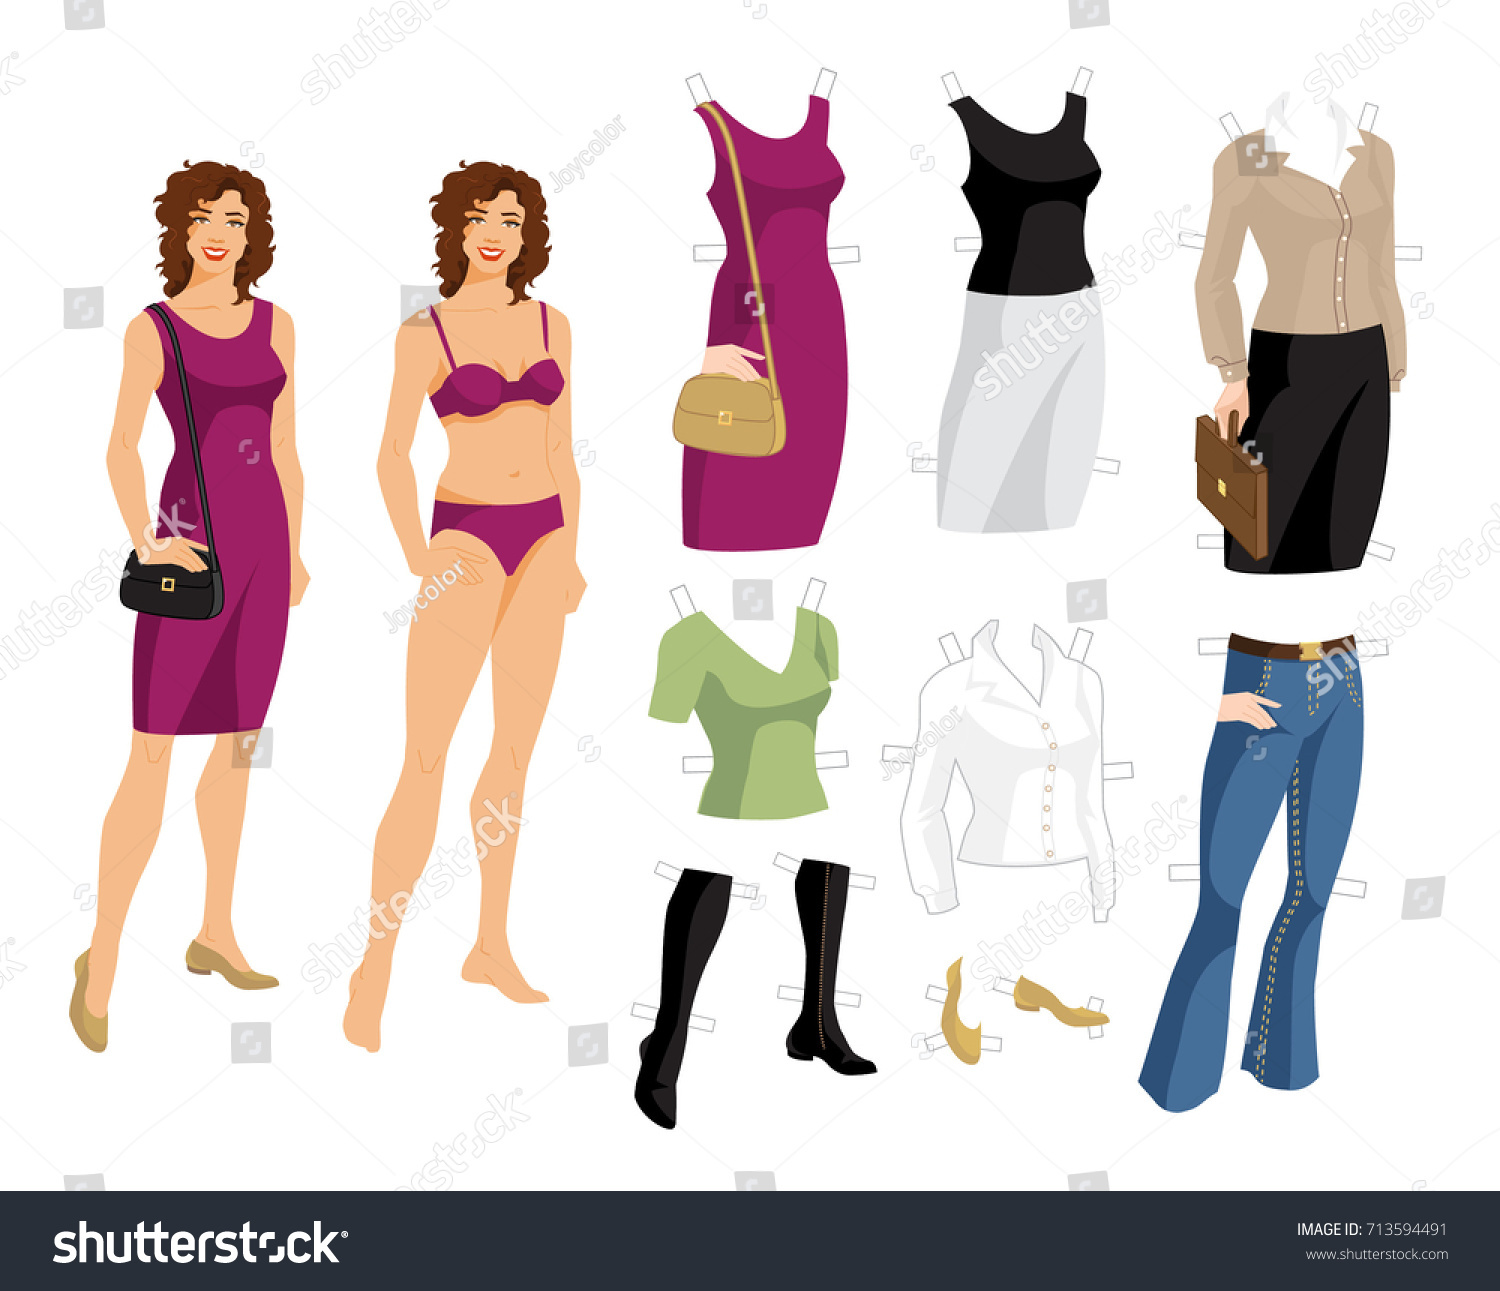 Paper Doll With Clothes For Office And Holiday Body Template Young Girl Curly